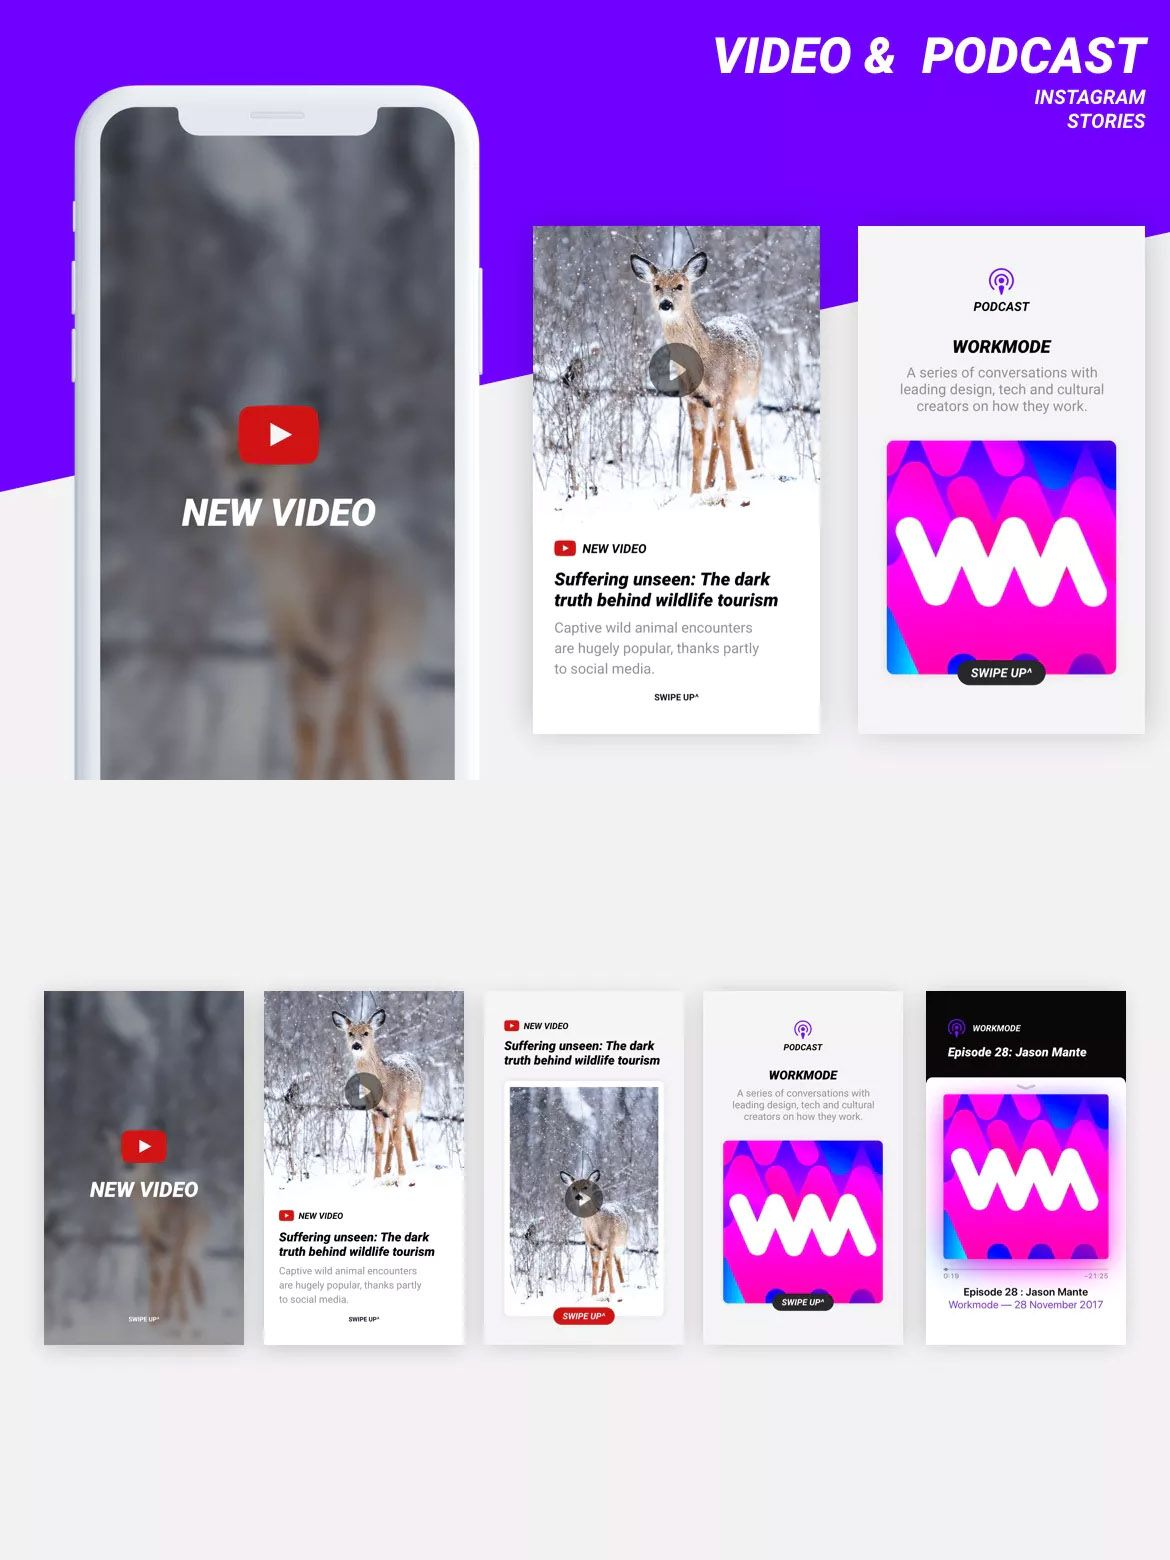 Video Podcast Instagram Stories Templates With Images Instagram Story Template Story Template Instagram Story